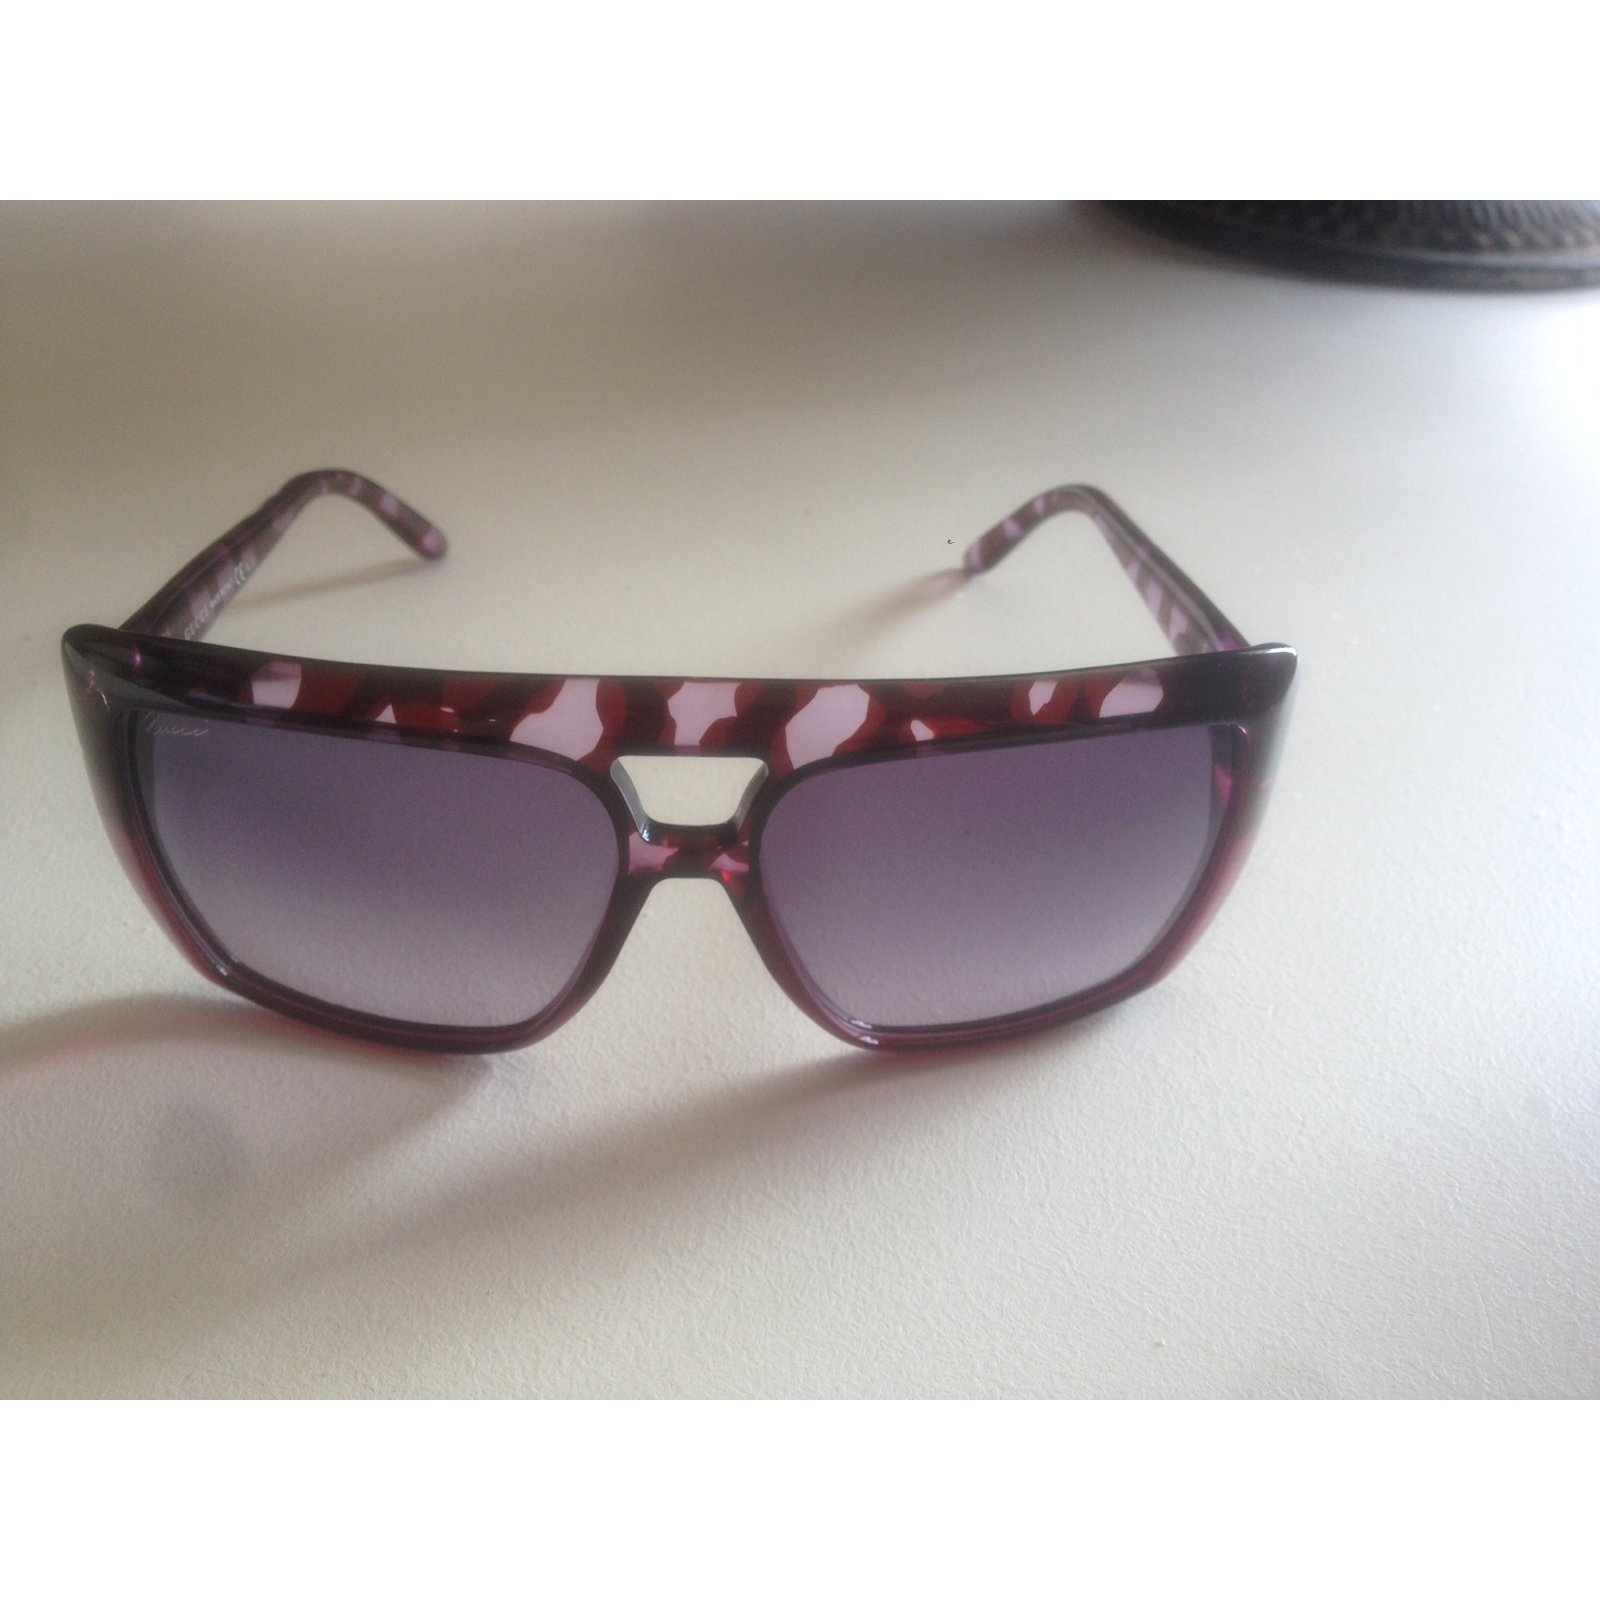 b6425a1de0f Facebook · Pin This. Gucci Sunglasses Sunglasses Plastic Other ref.11212